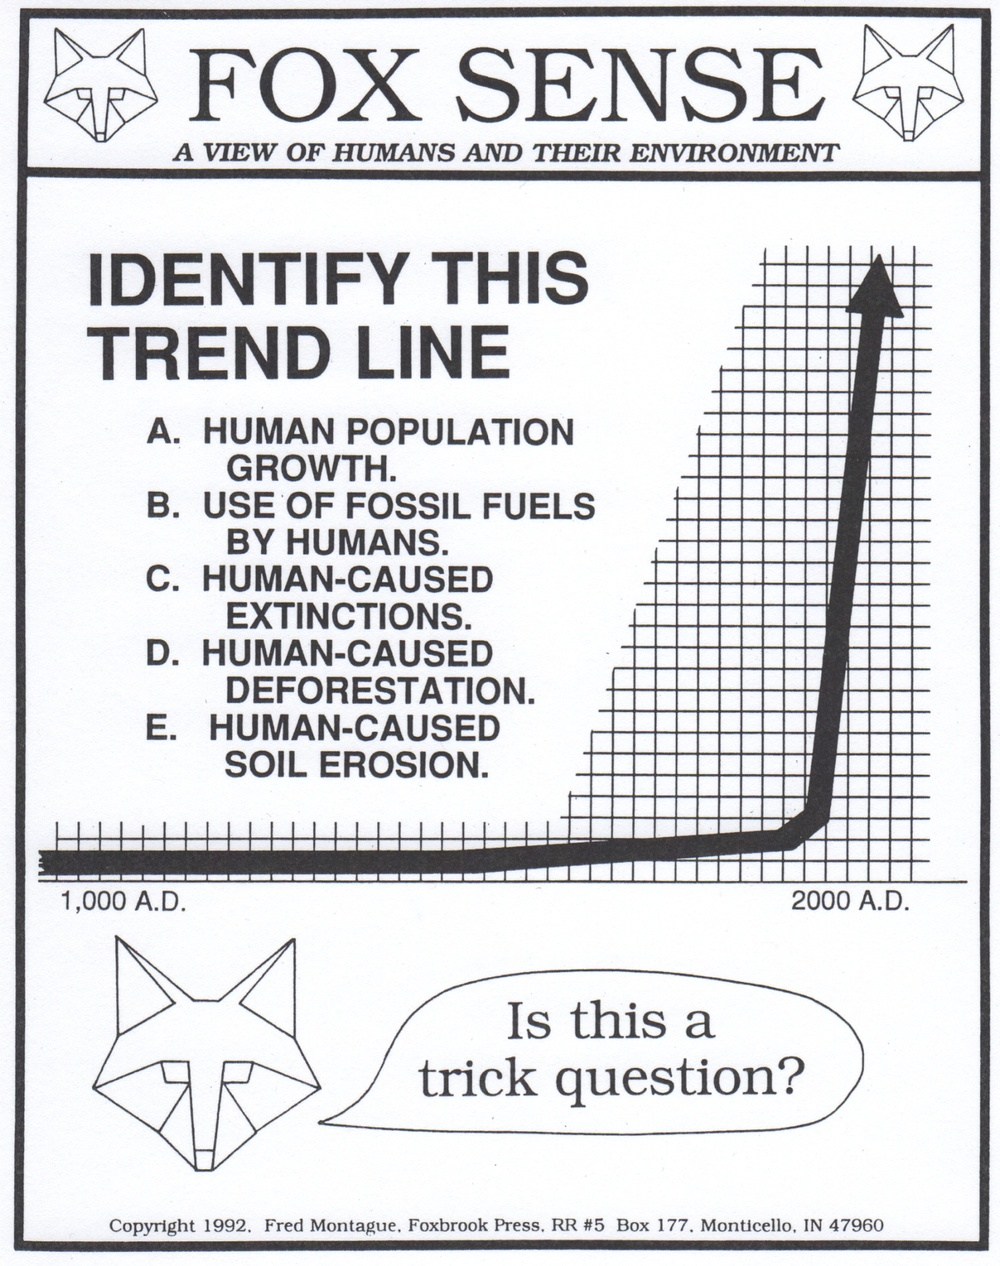 FoxSense: Identify This Trend Line © Fred Montague